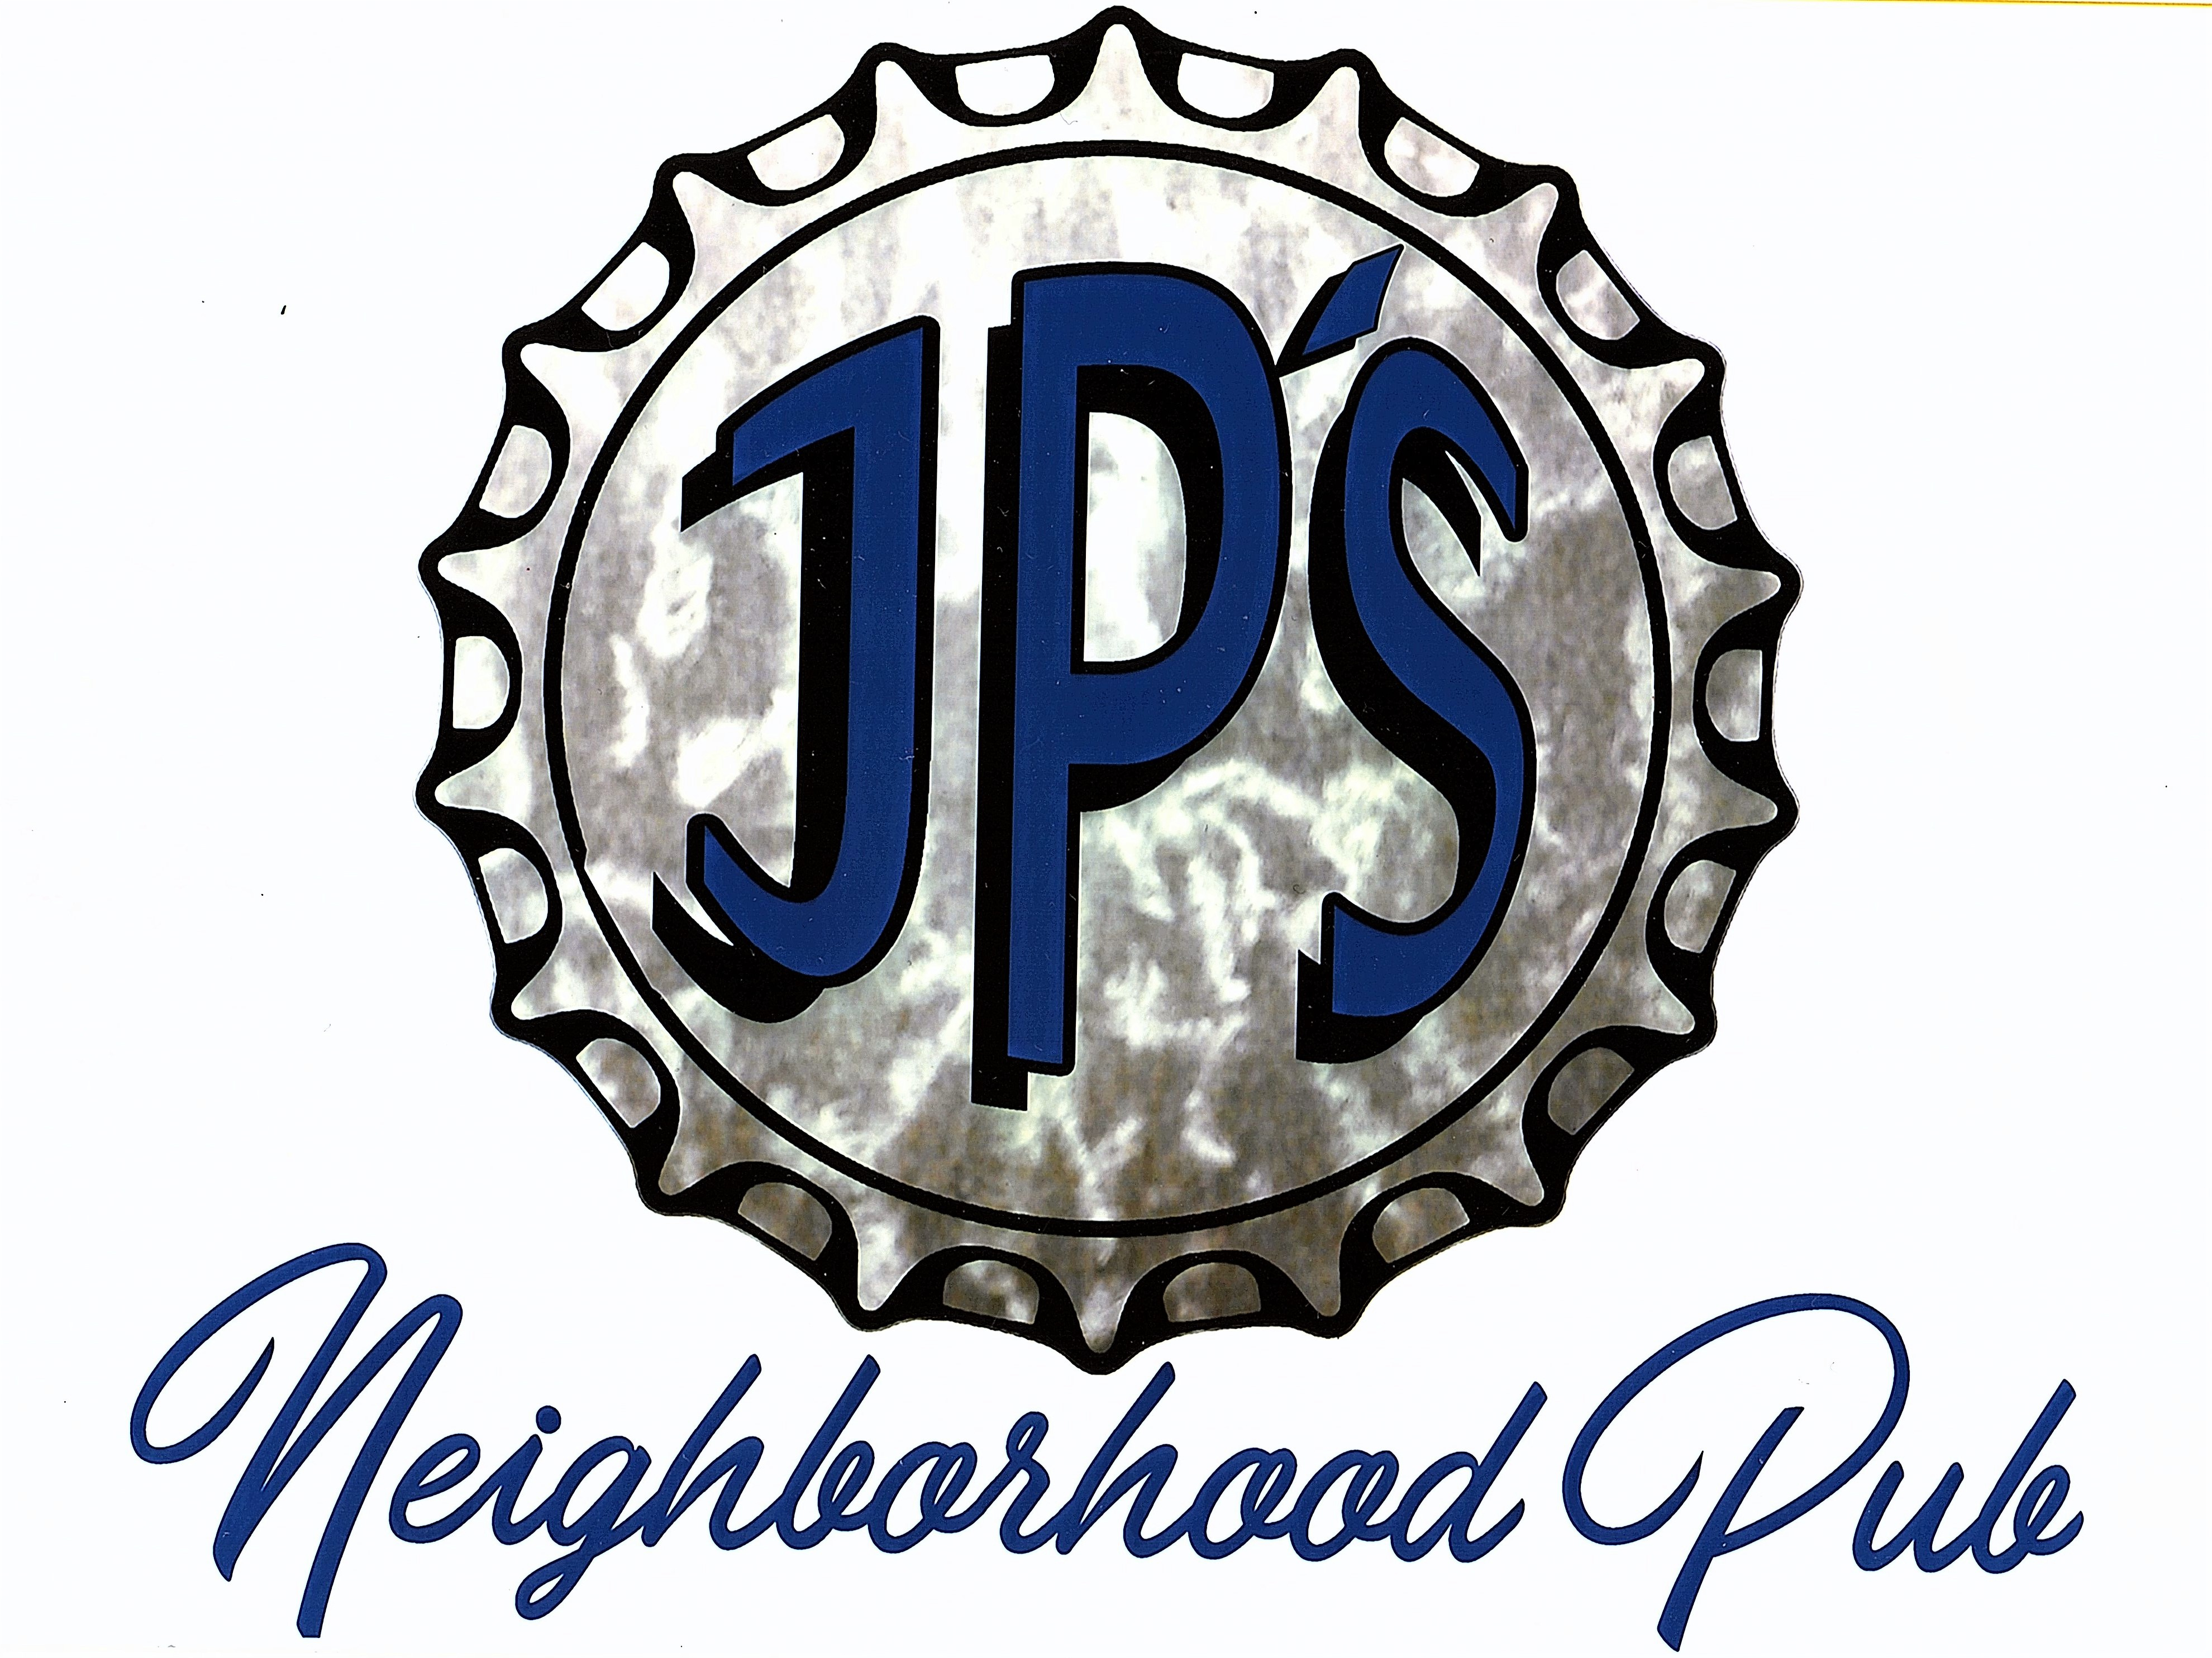 JP's Neighborhood Pub